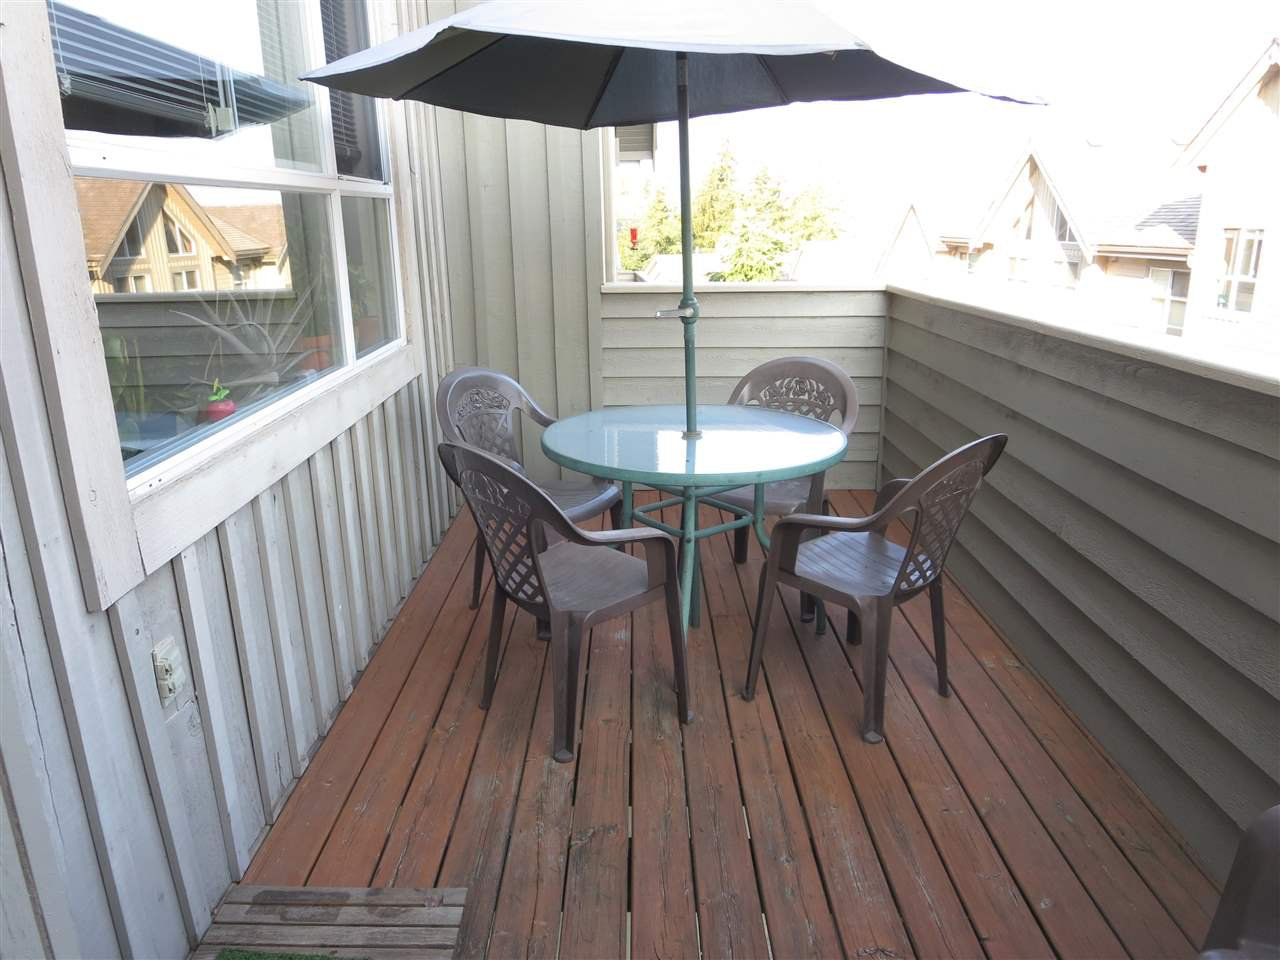 Photo 5: Photos: 2926 PANORAMA Drive in Coquitlam: Westwood Plateau Townhouse for sale : MLS®# R2293331